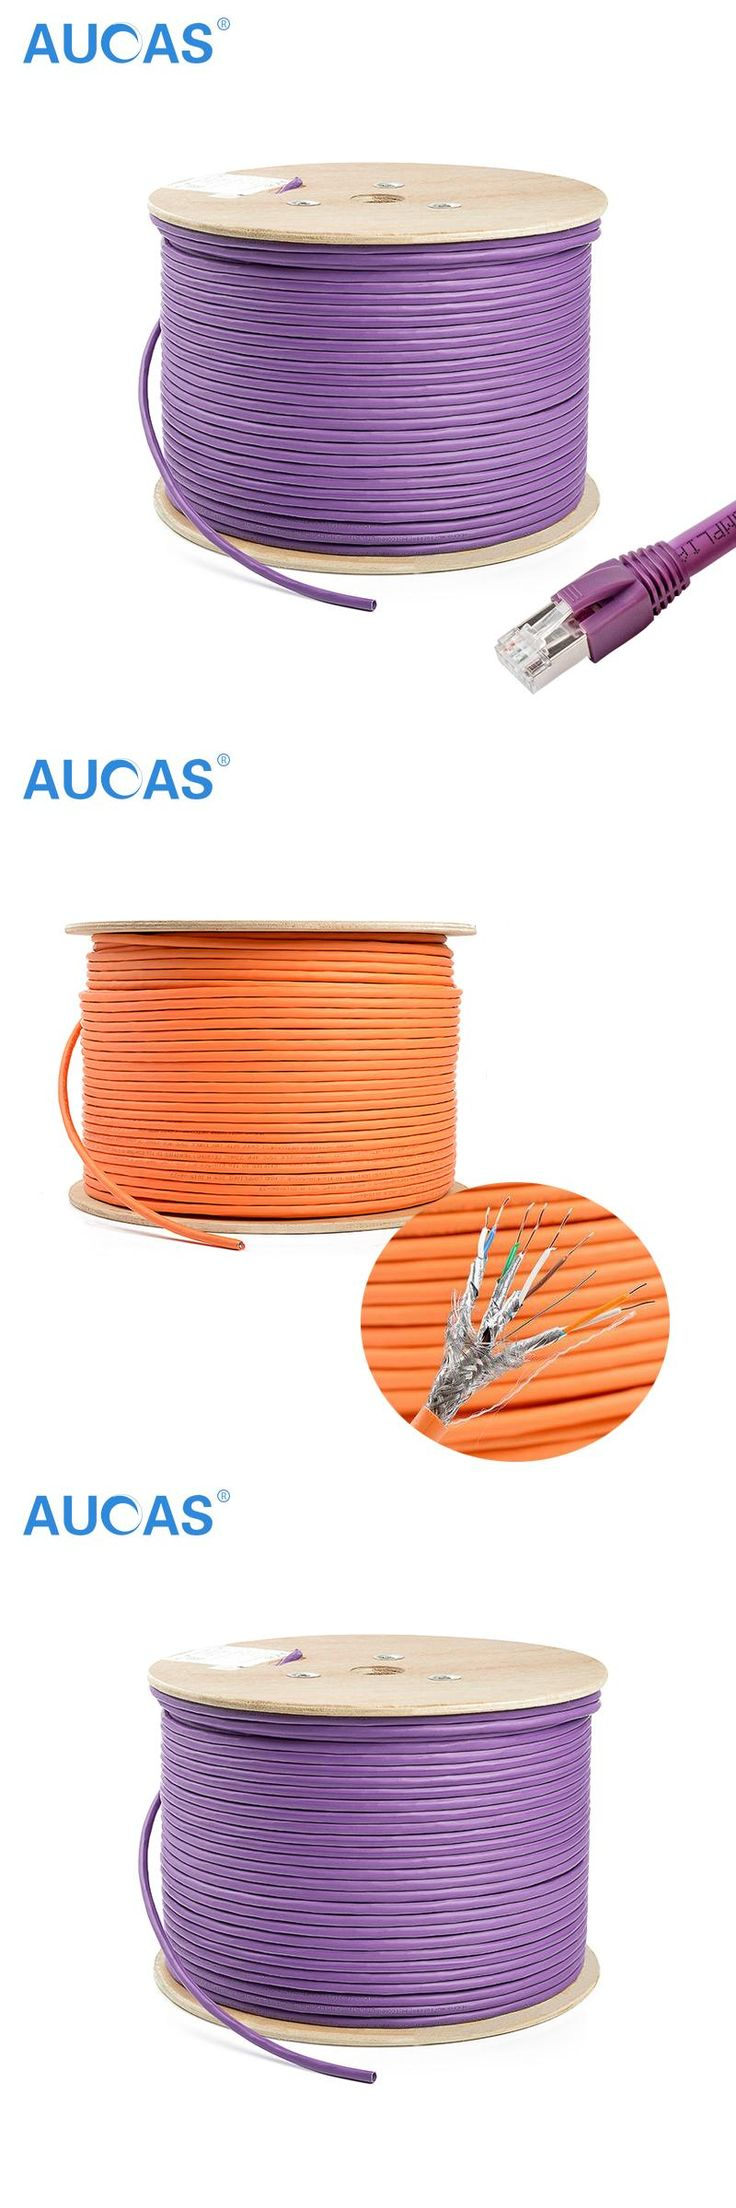 AUCAS 10m 20m 30m 4 pairs twisted Cat7 RJ45 Cable FTP Solid Lan Ethernet Cables Network cable Cat7 Free Shipping